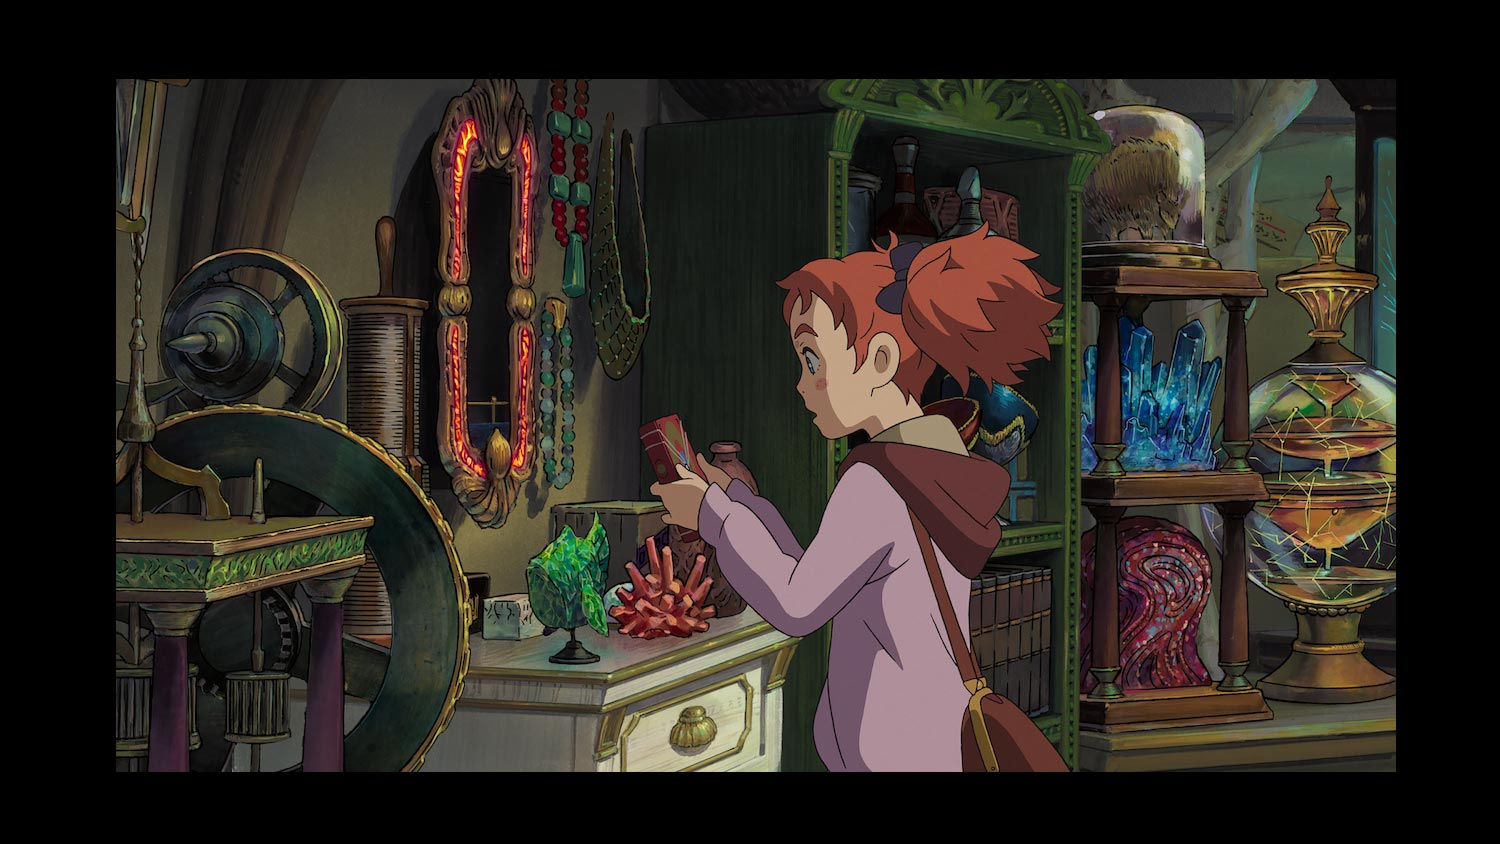 Mary And The Witch's Flower Review - OC Movie Reviews - Movie Reviews, Movie News, Documentary Reviews, Short Films, Short Film Reviews, Trailers, Movie Trailers, Interviews, film reviews, film news, hollywood, indie films, documentaries